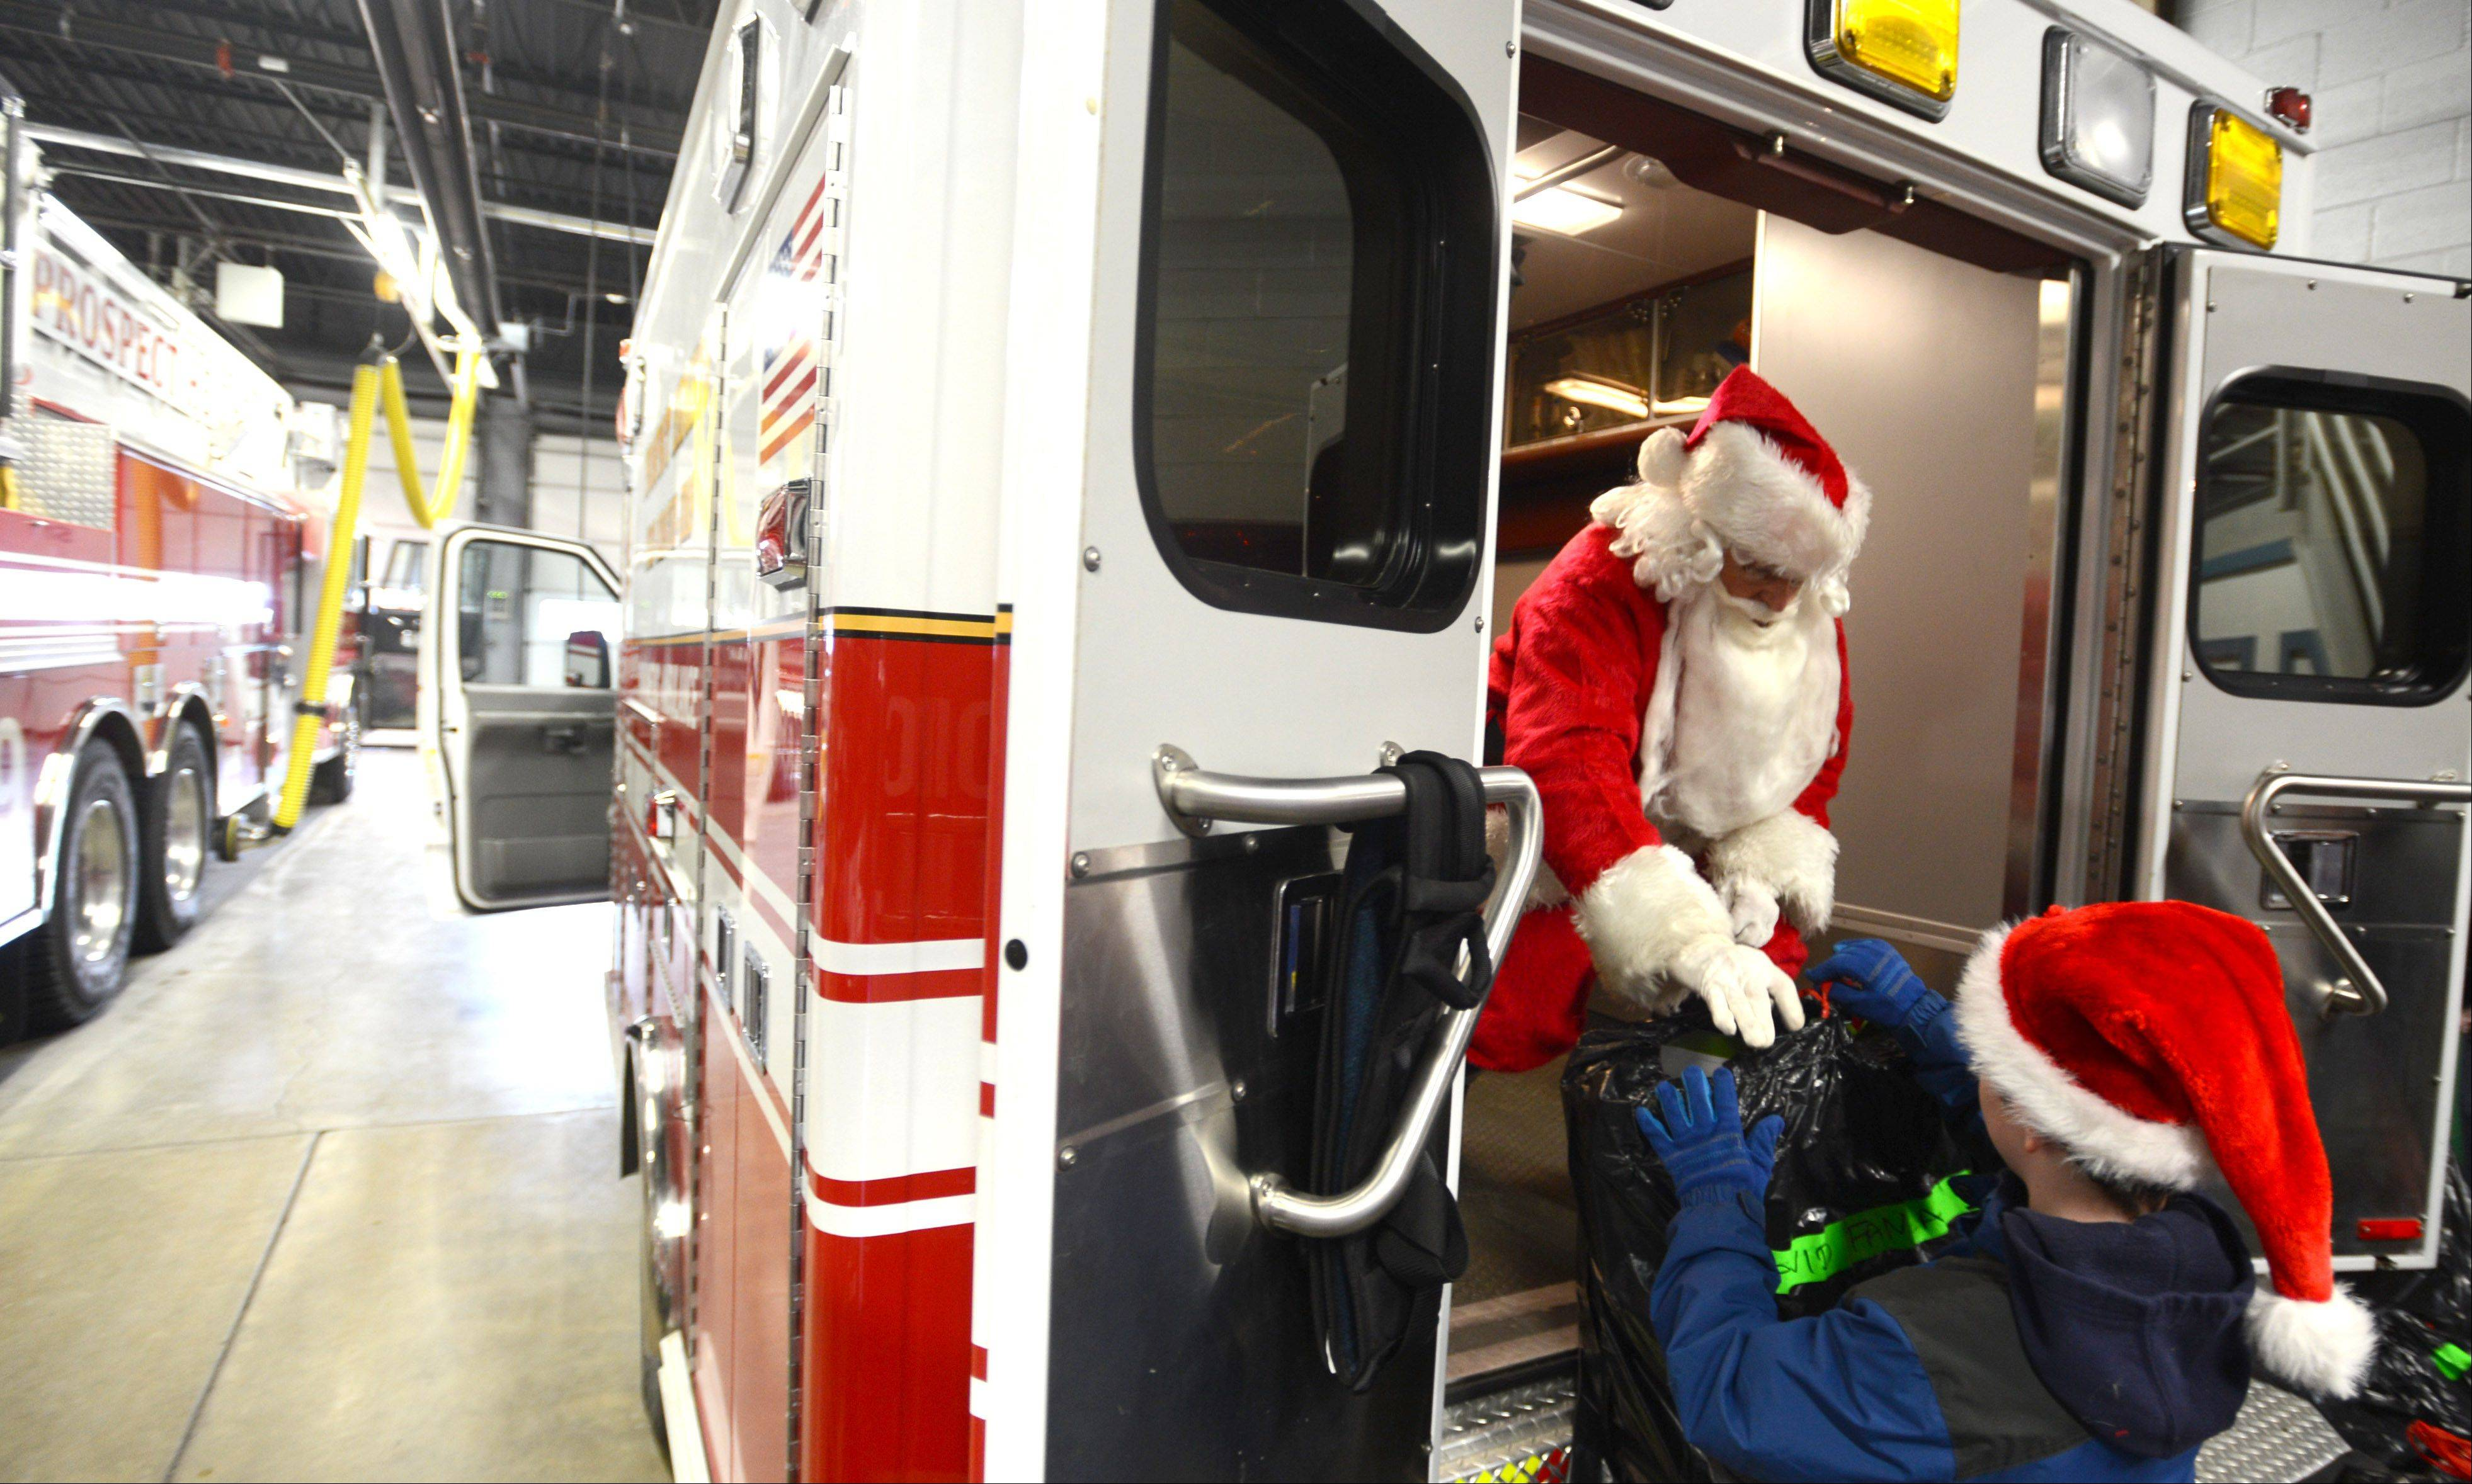 Santa Claus receives assistance Monday from volunteer Brandon Suerth, 9, of Prospect Heights as they load Christmas gifts into an ambulance for delivery to local families in need.